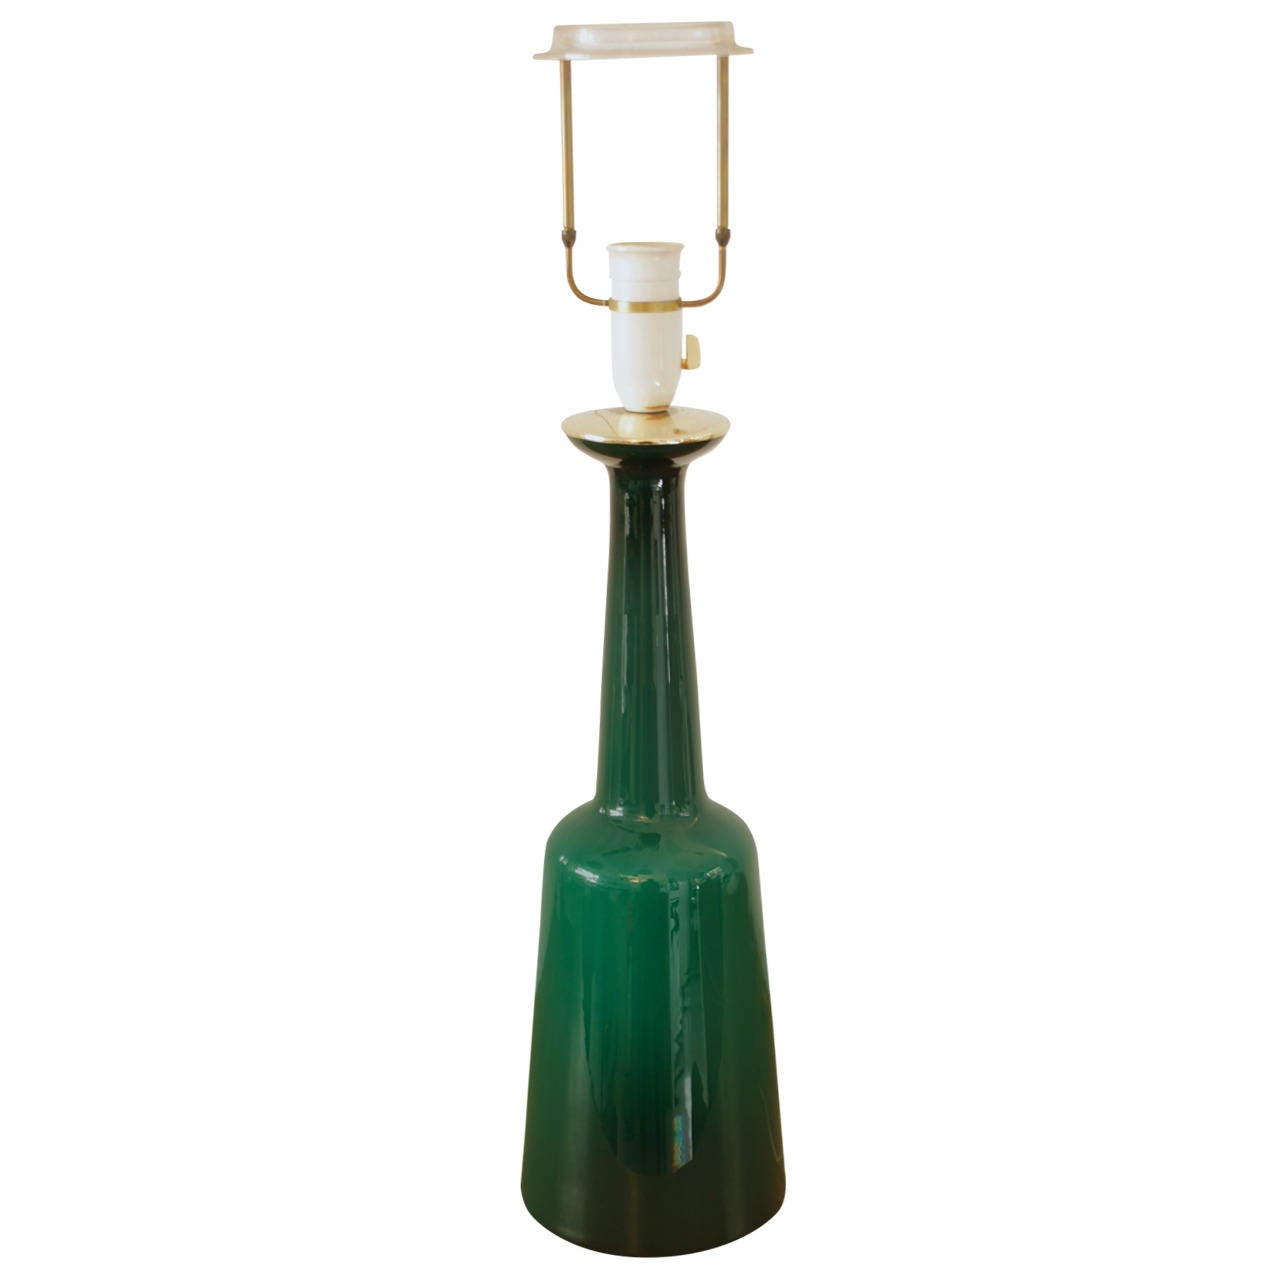 Green Glass Bottle Lamp Base By Holmegaard At 1stdibs